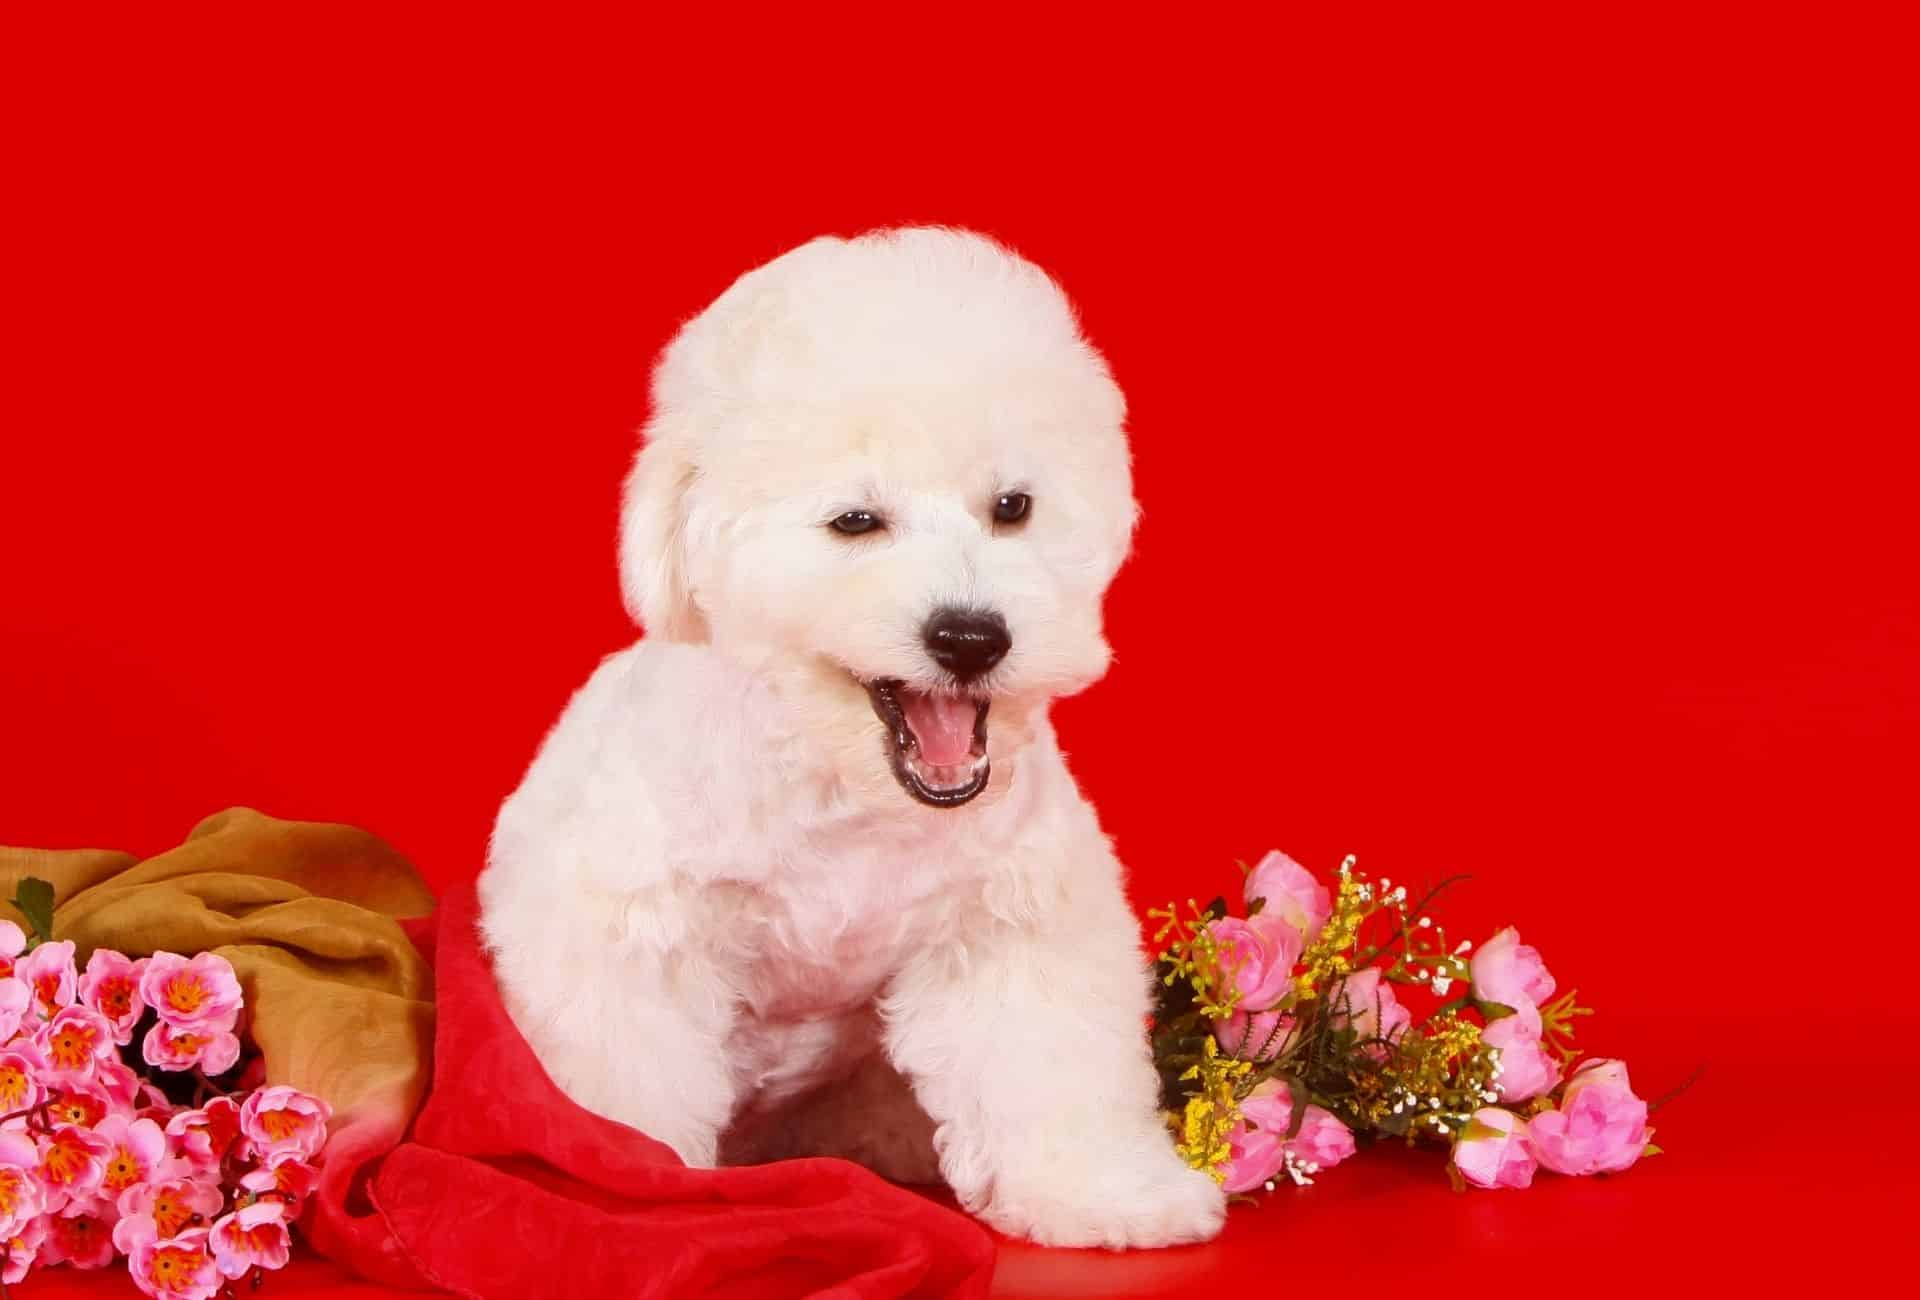 Bichon Frise with a round haircut in front of a red background and flowers.